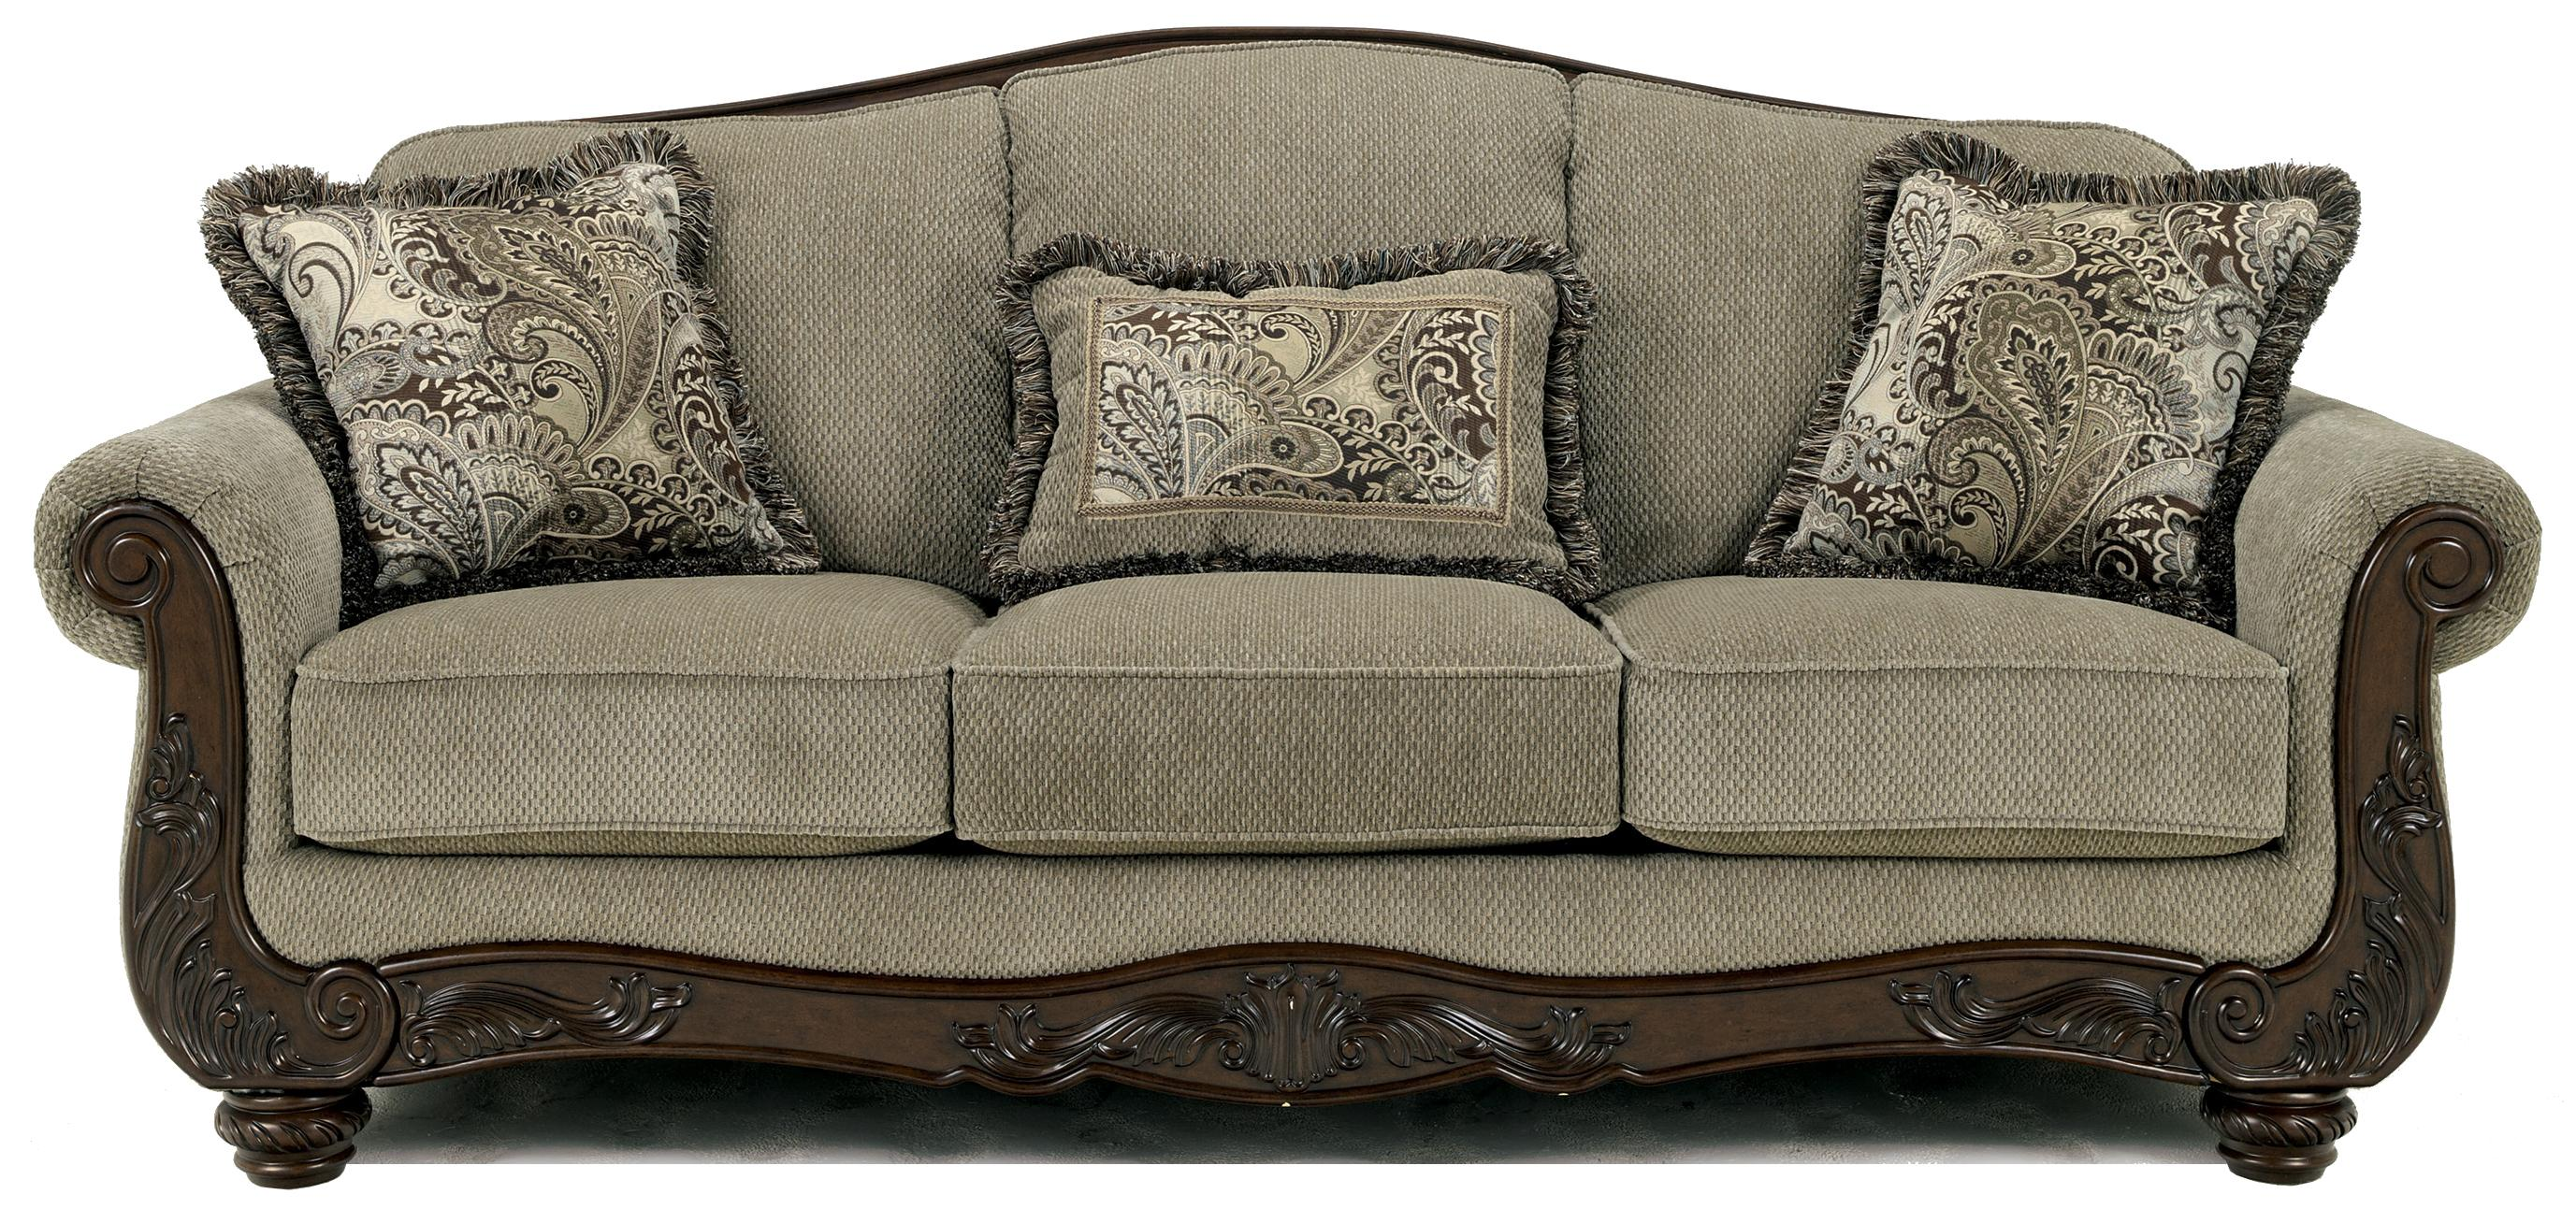 Signature design by ashley martinsburg meadow 5730038 for Traditional couches